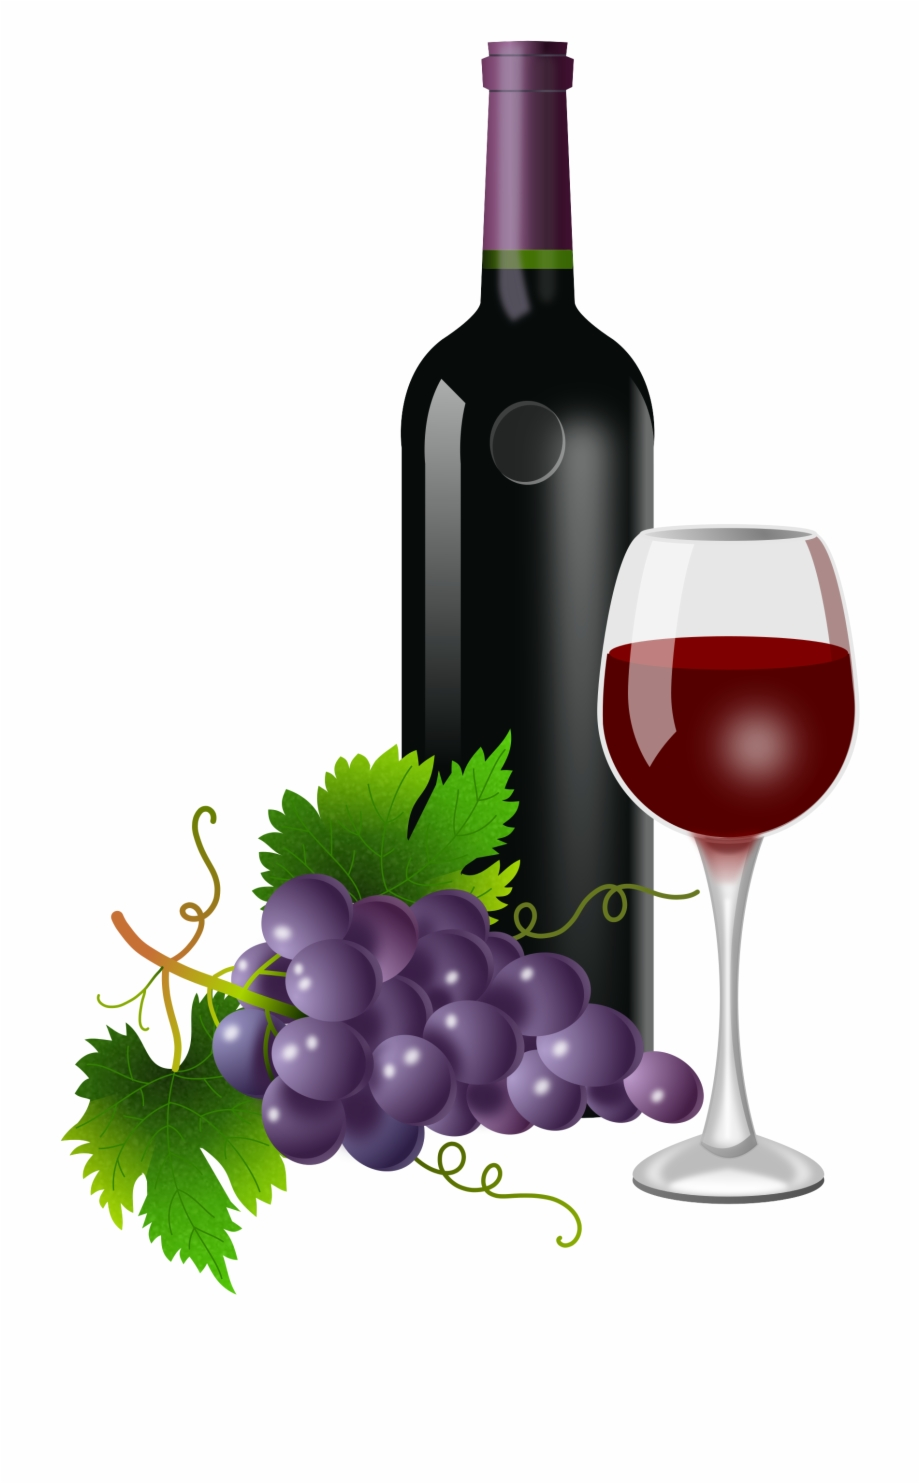 Wine Bottle And Grapes Png - Free Wine Bottle Silhouette Png, Downloa #1454338 - PNG Images - PNGio